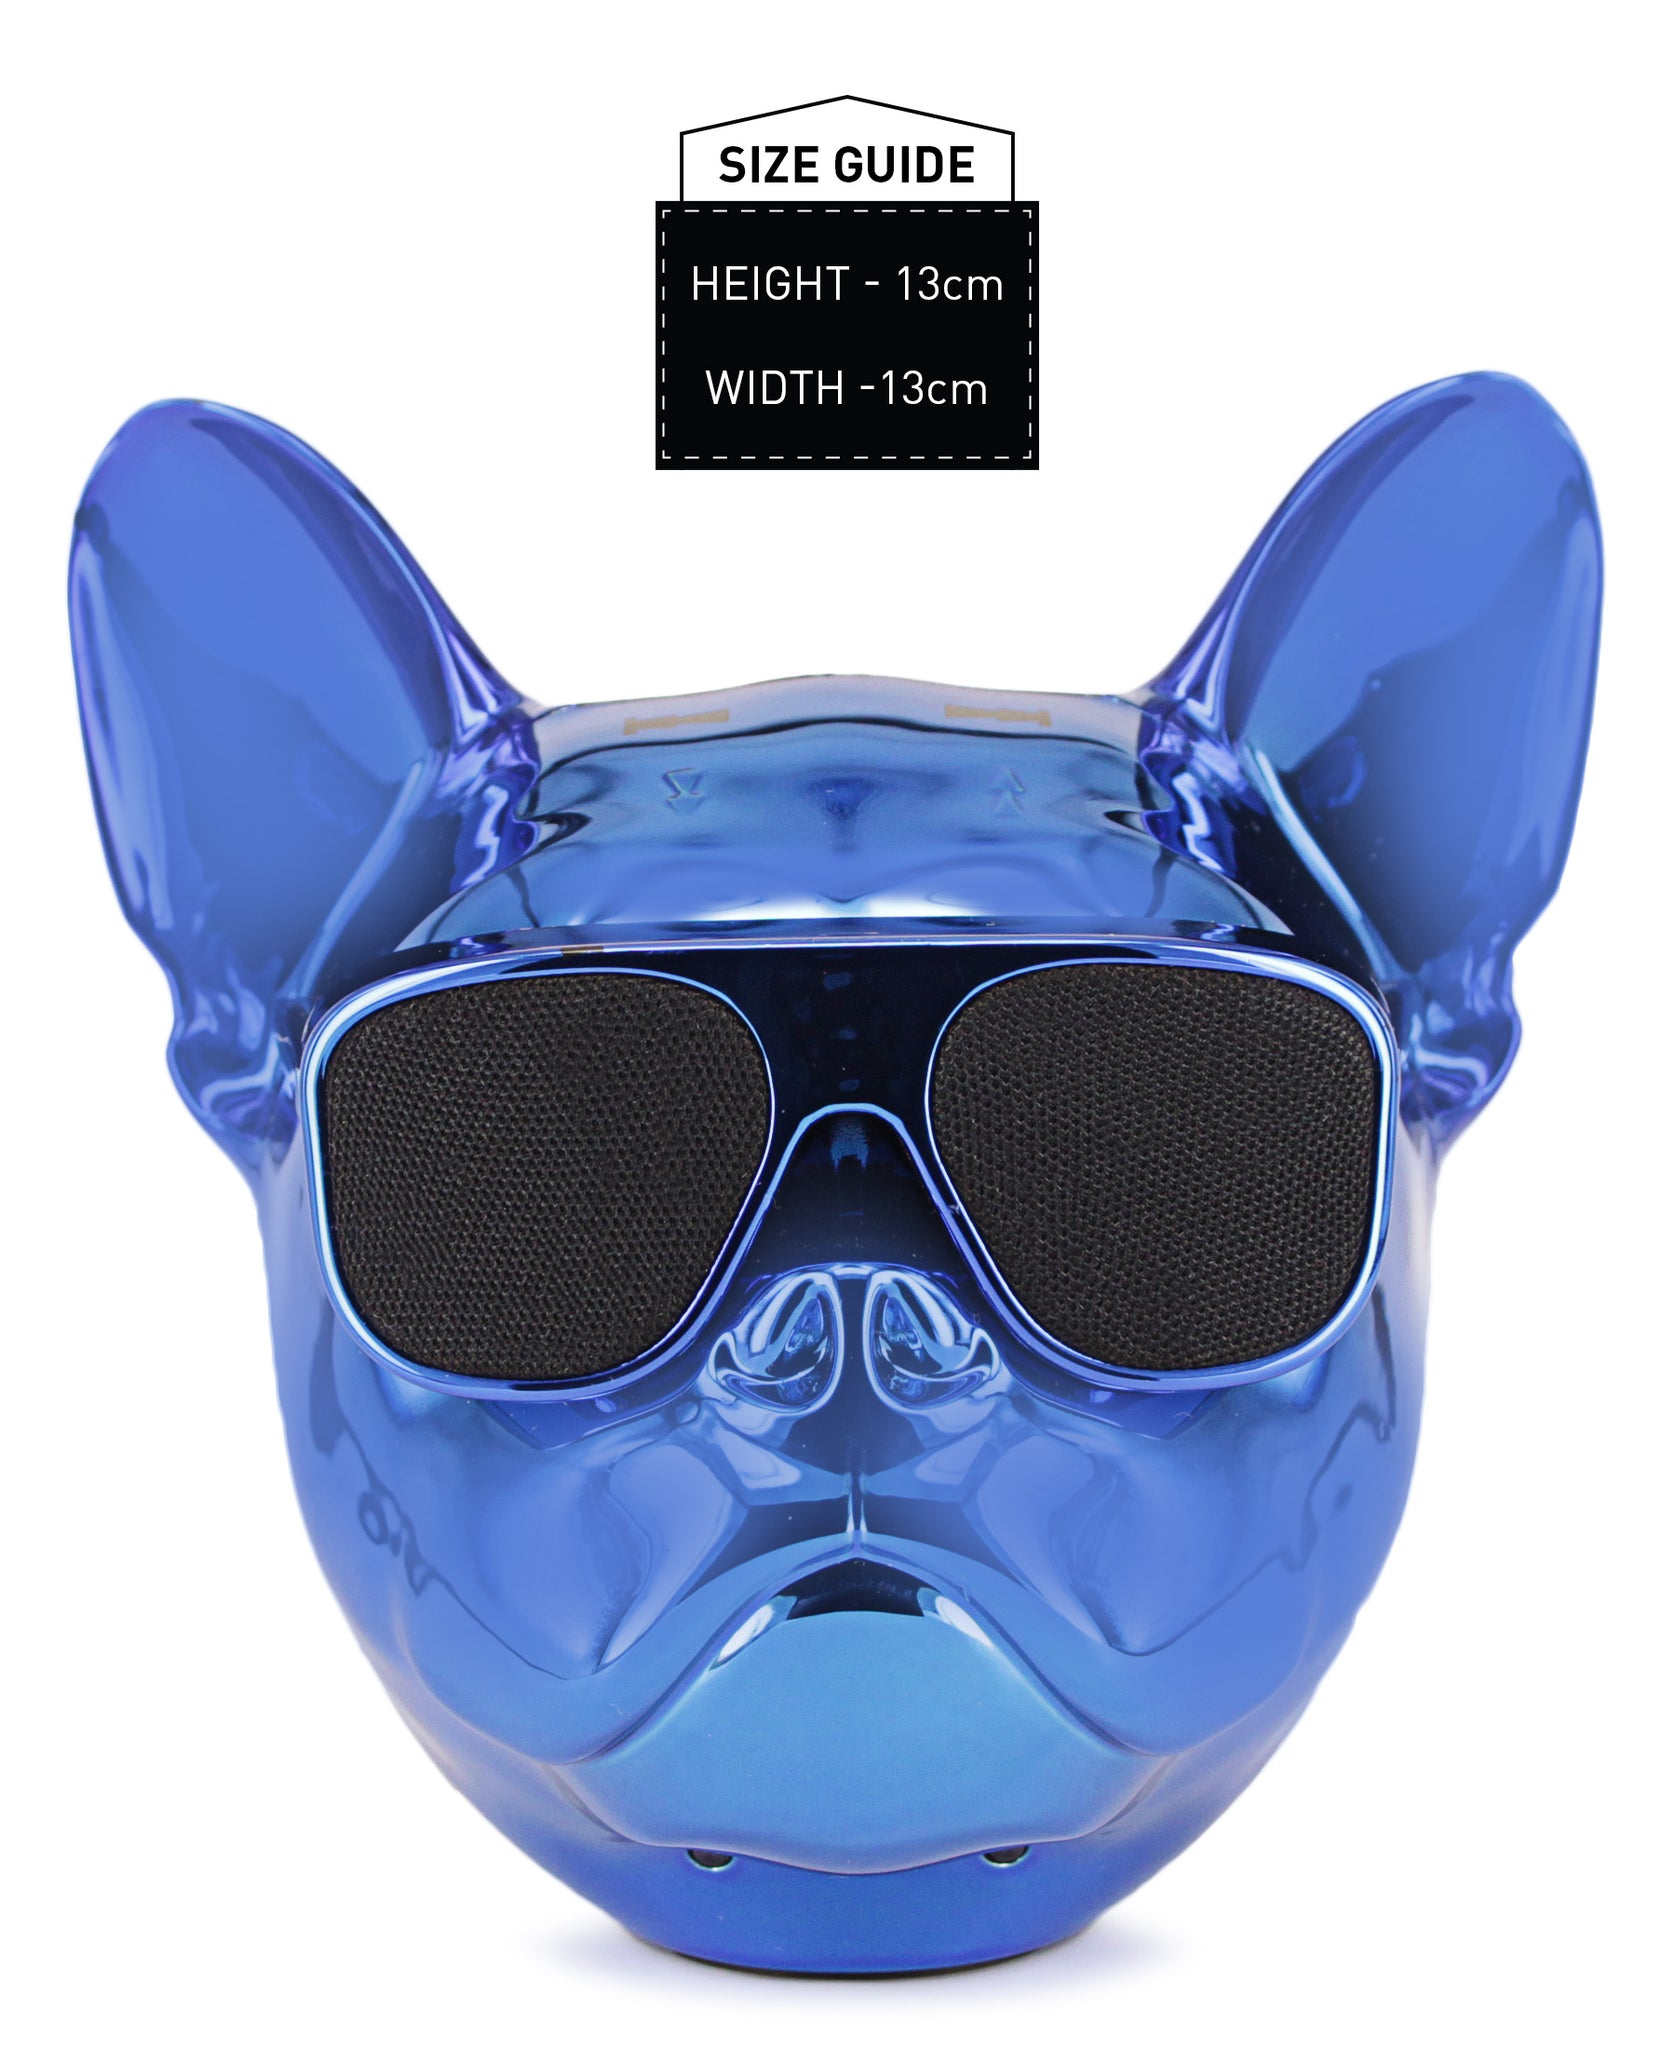 Dog Head Bluetooth Speaker - Blue